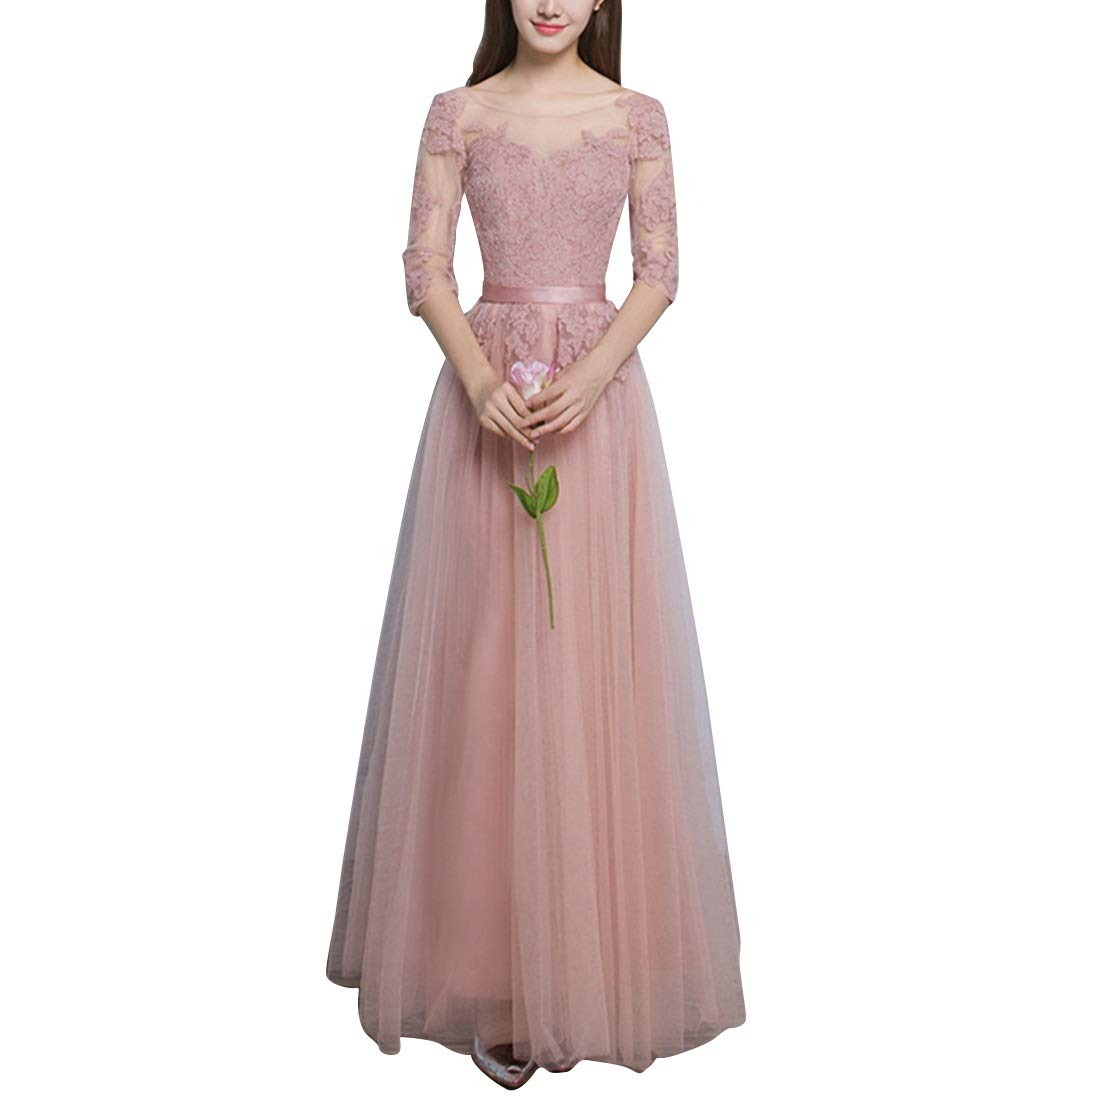 Women's Embroidery Long Evening Dress Bridesmaid Dress (Size   M)